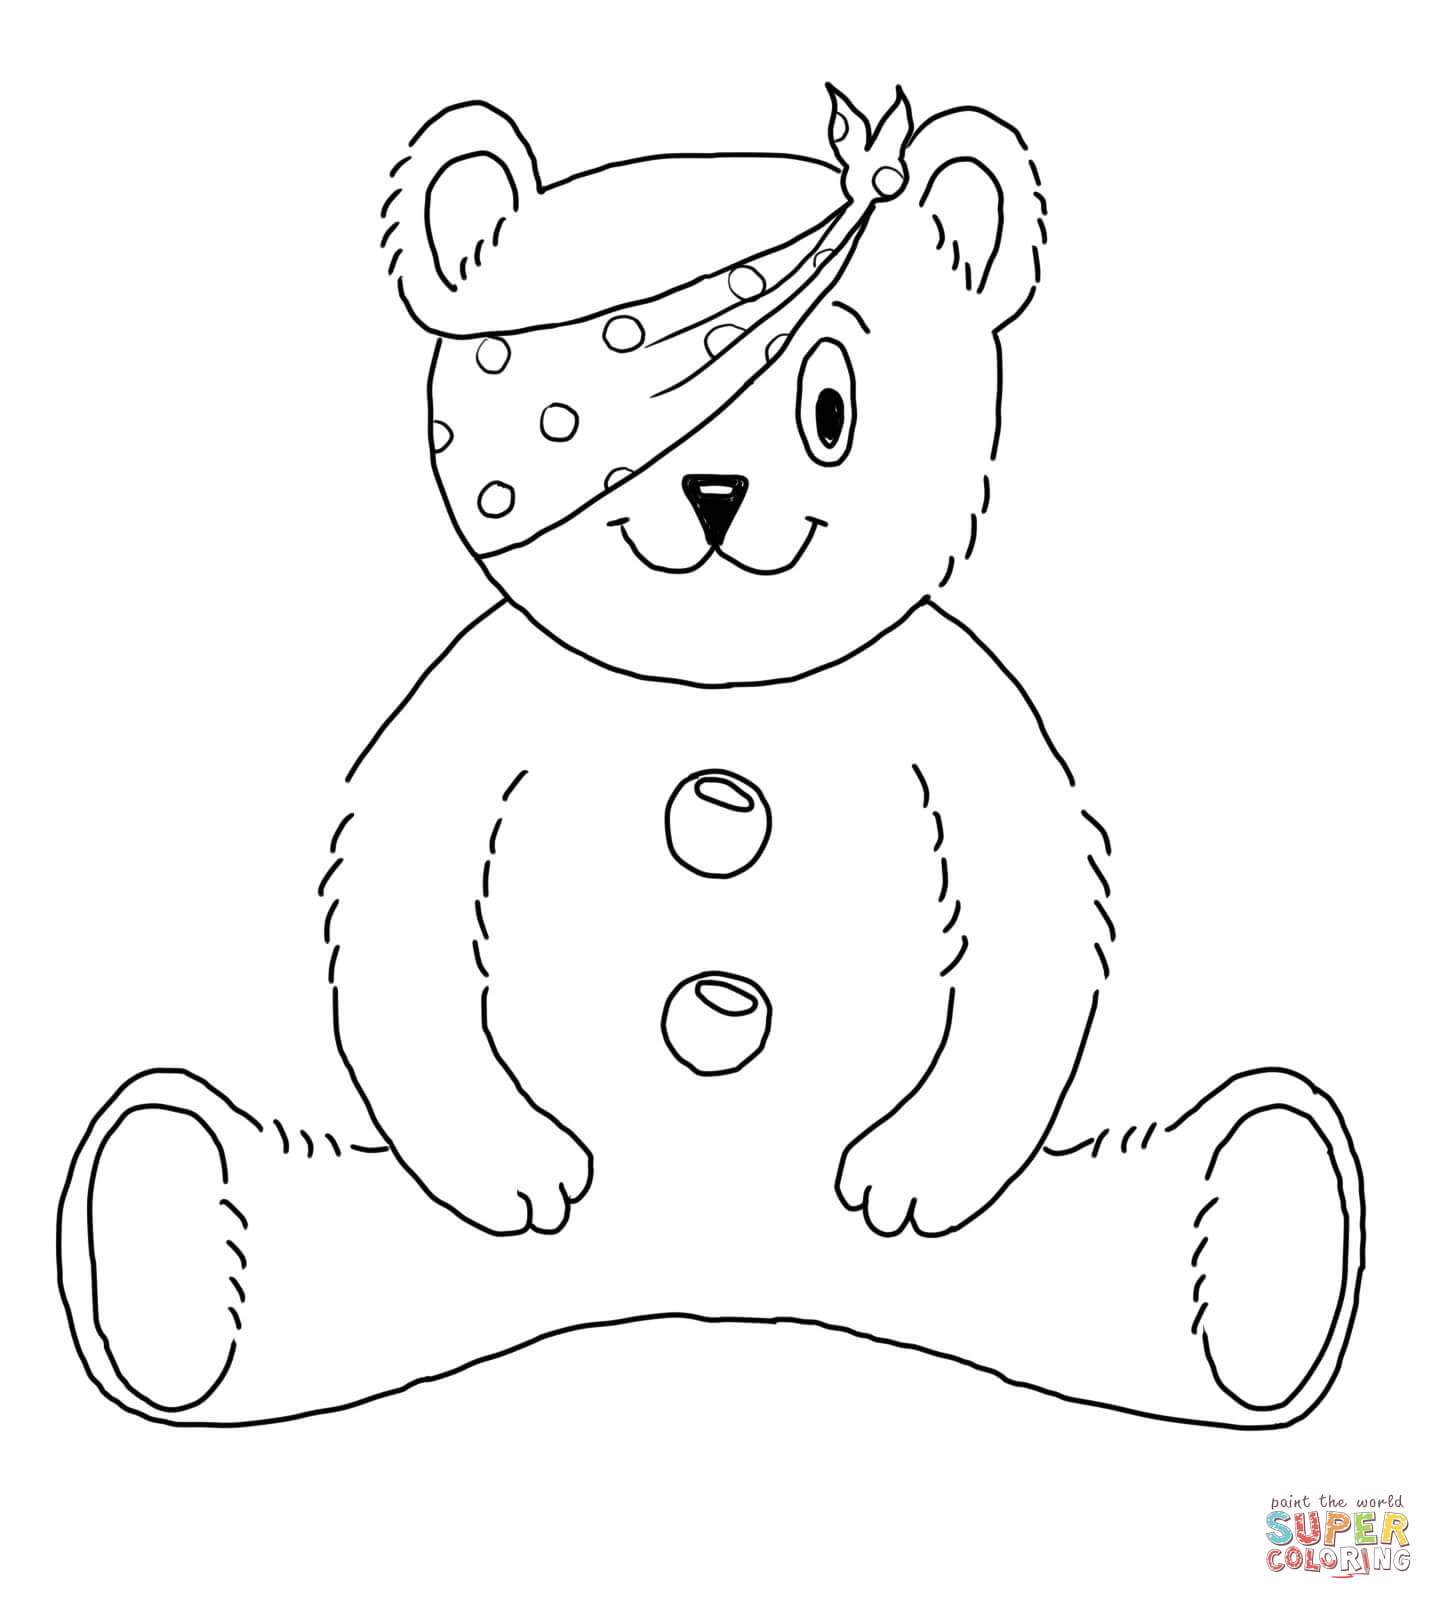 pudsey bear colouring sheet 10 best pudsey colouring sheets images on pinterest bear colouring pudsey sheet bear